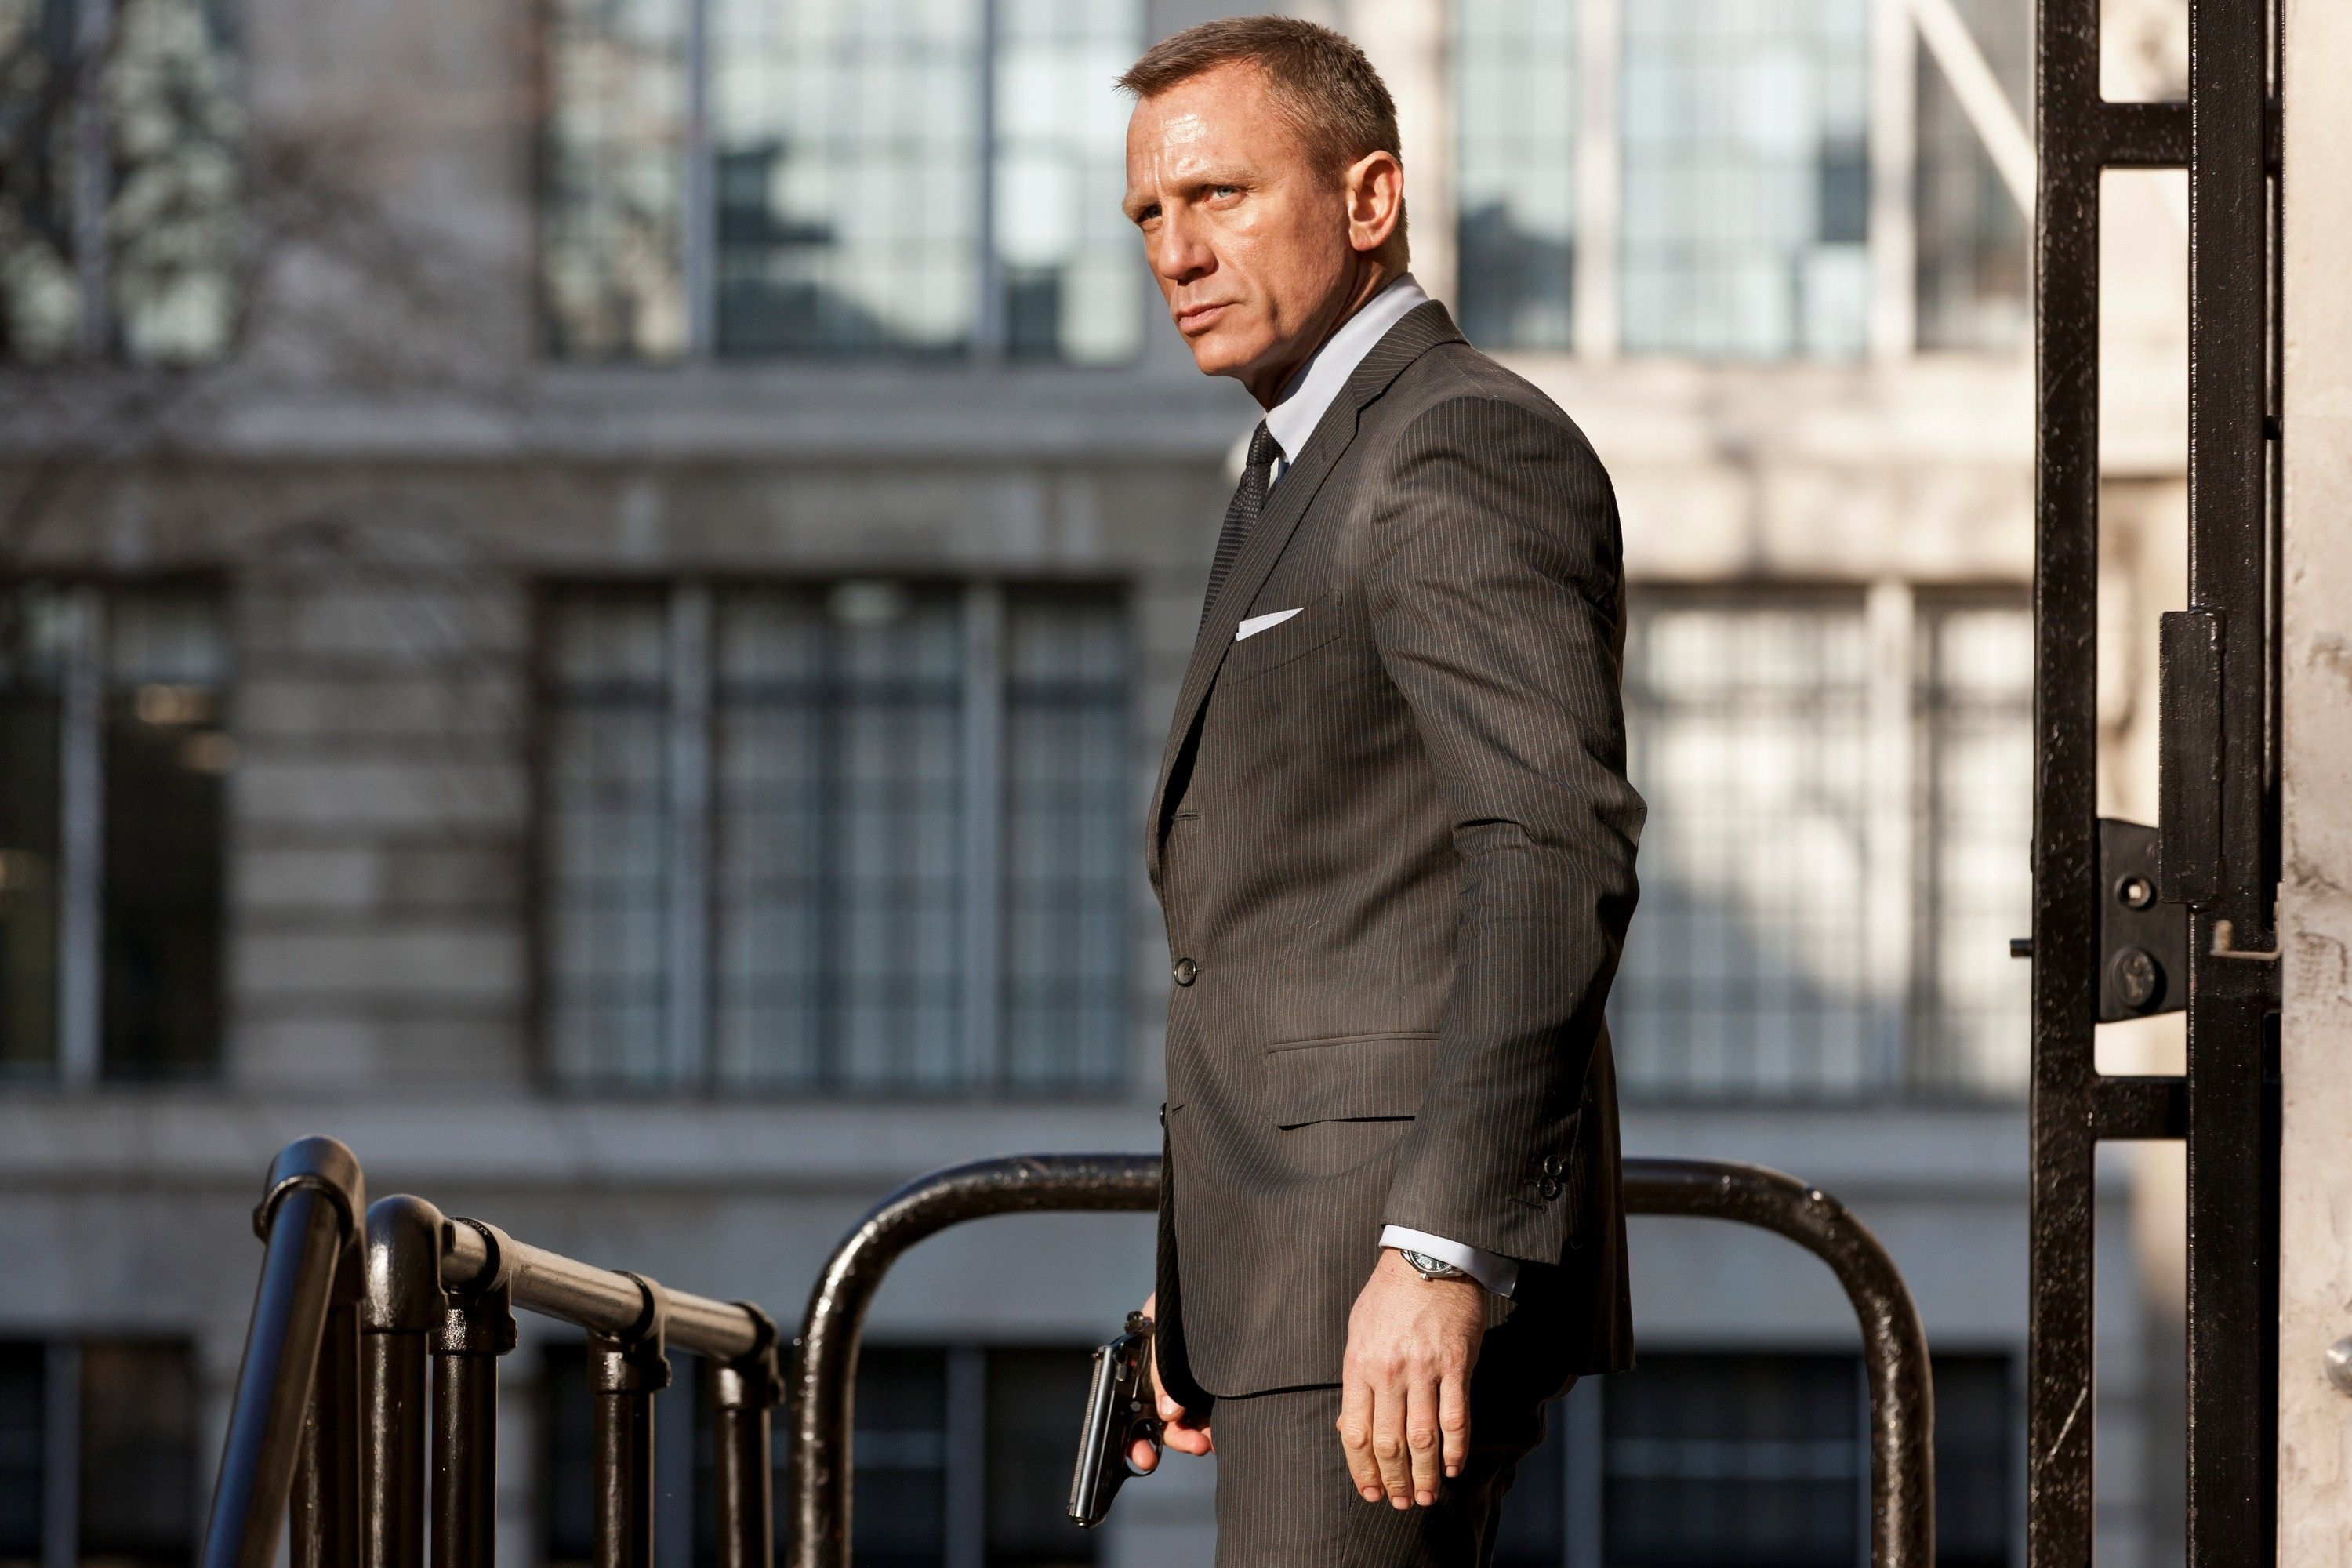 daniel craig famous english actor hd wallpapers | hollywood actors